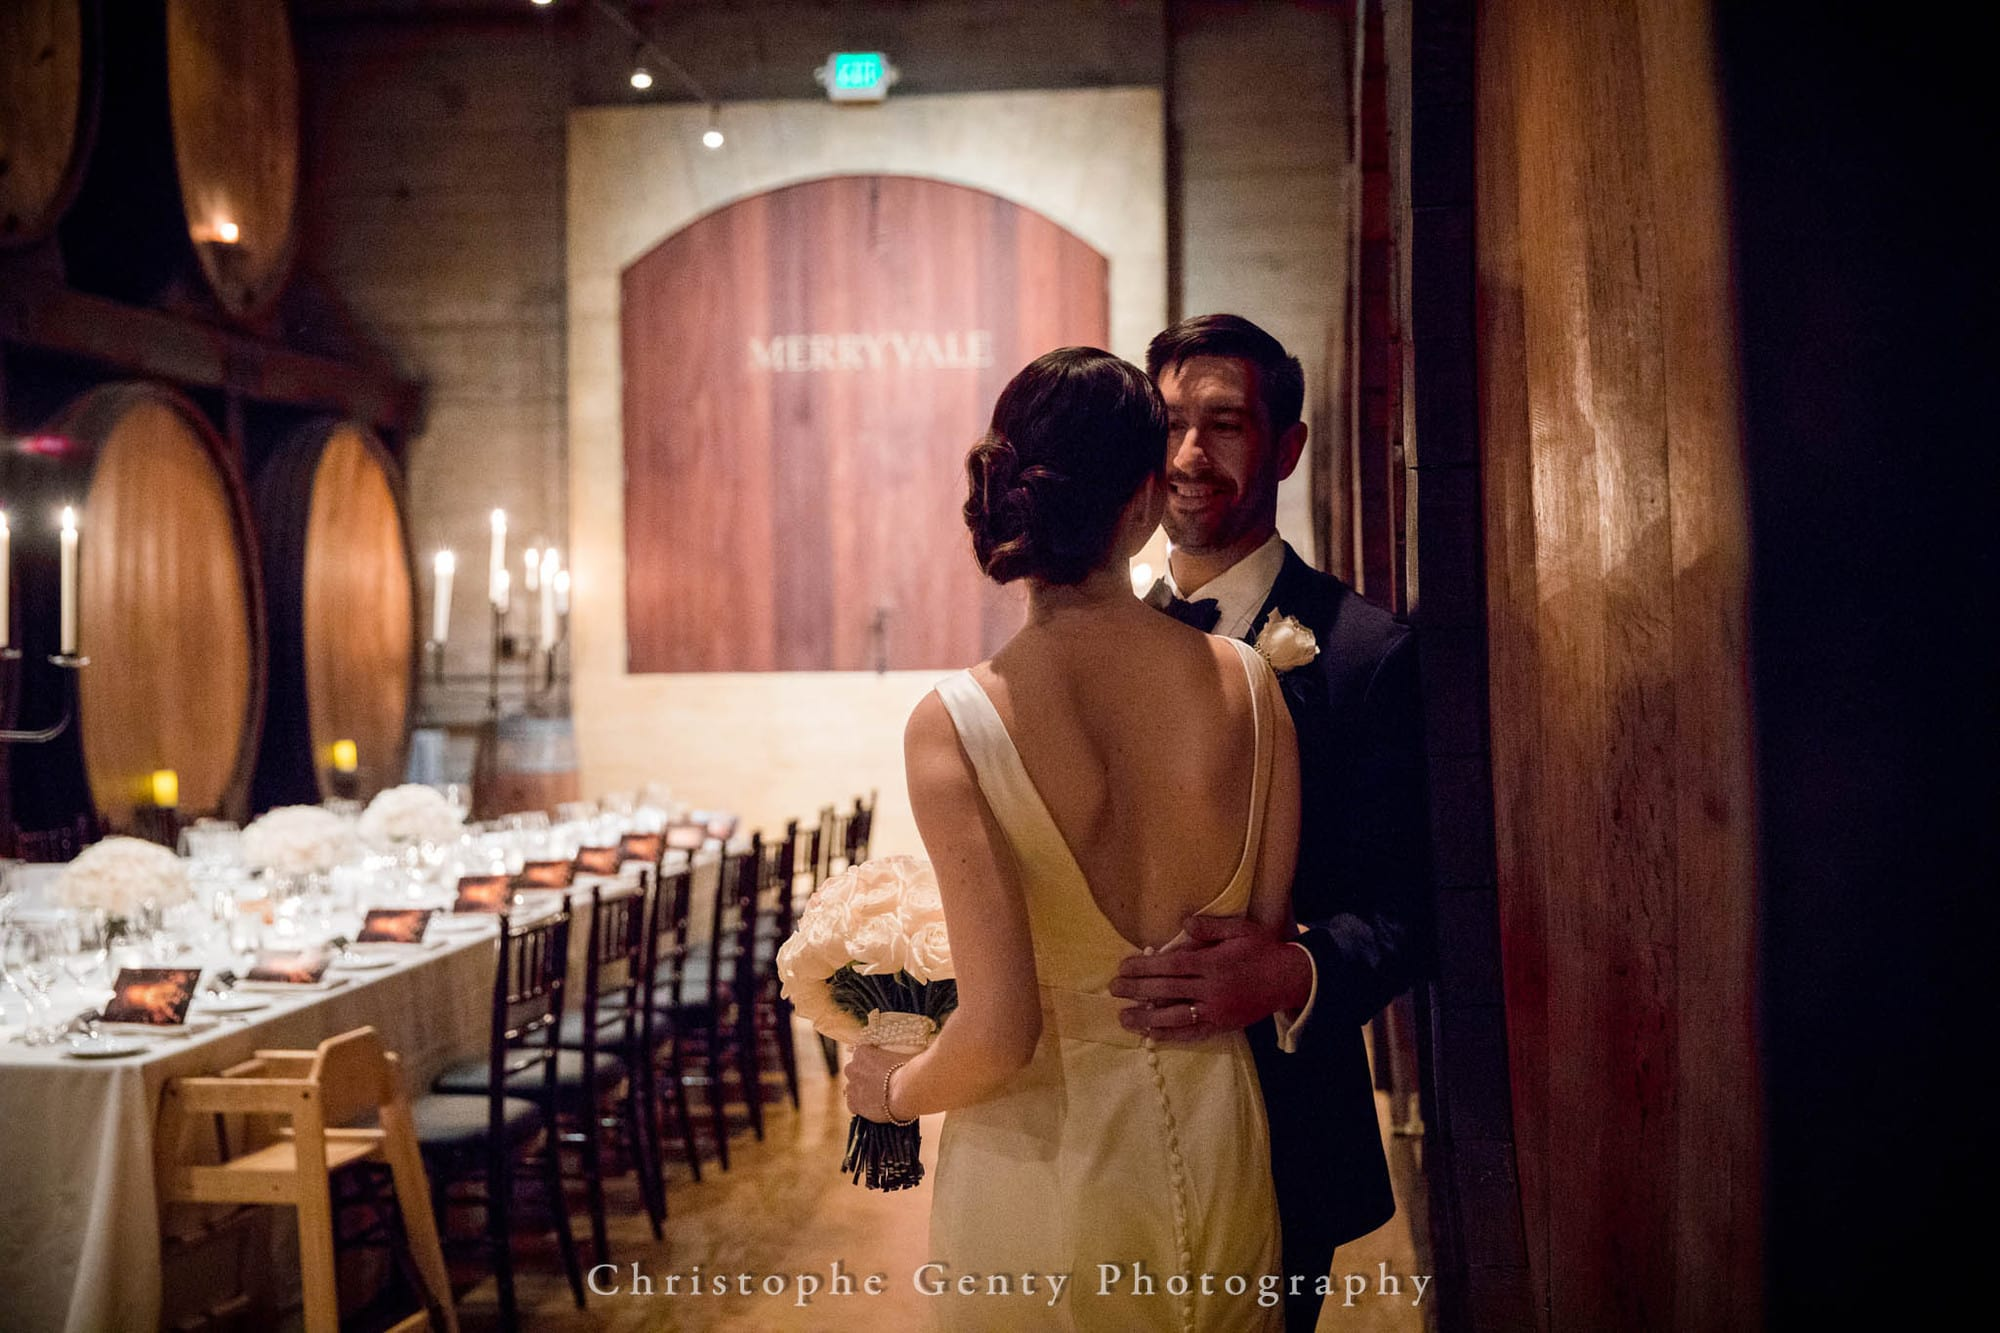 Wedding Photography at Merryvale Vineyards in the Napa Valley, CA | Christophe Genty Photography